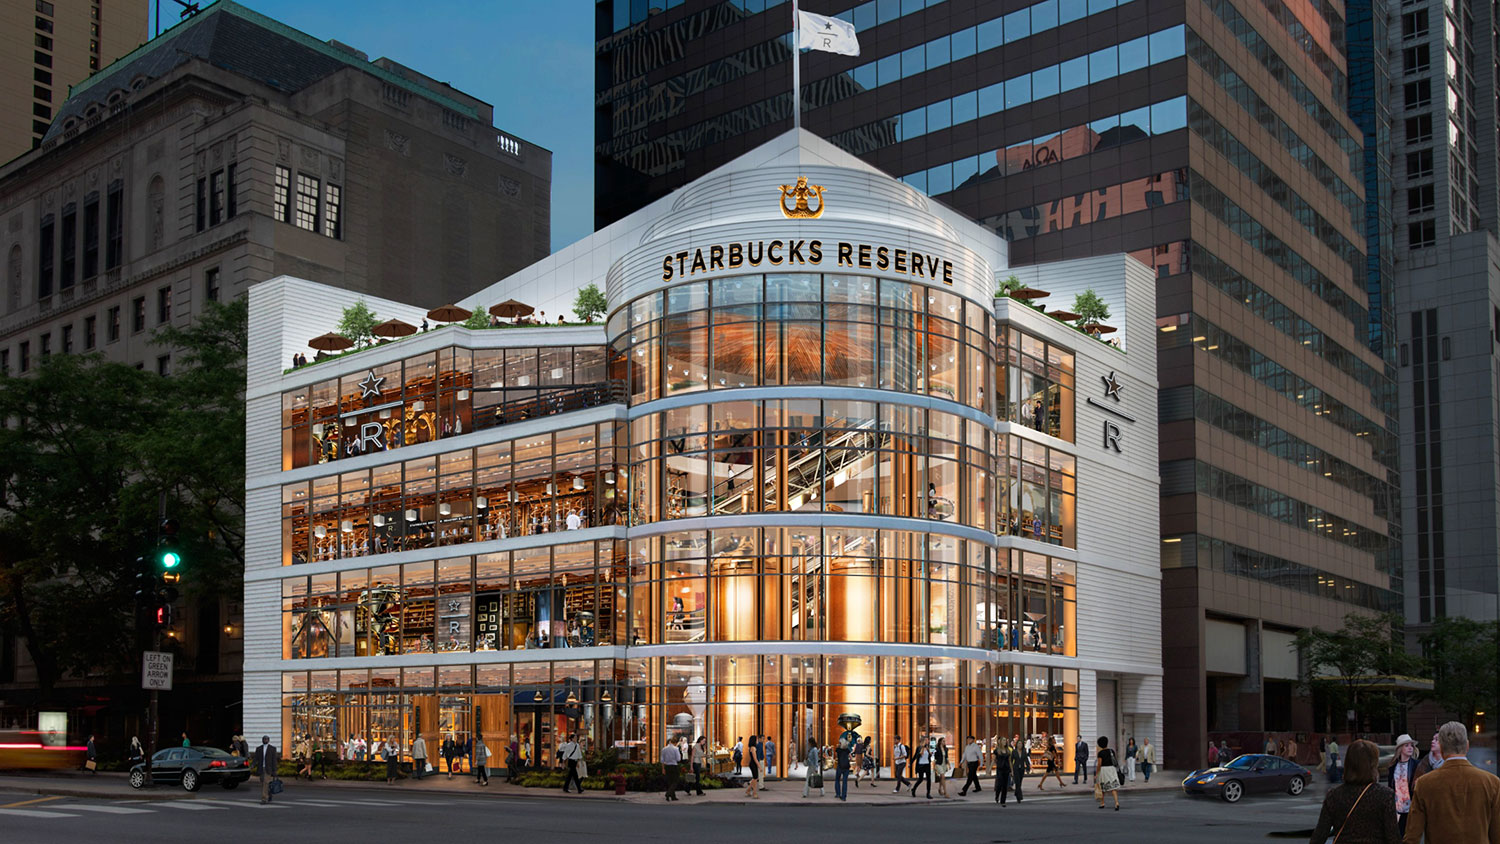 This Gigantic, 4-Story Starbucks Is Coming to Chicago